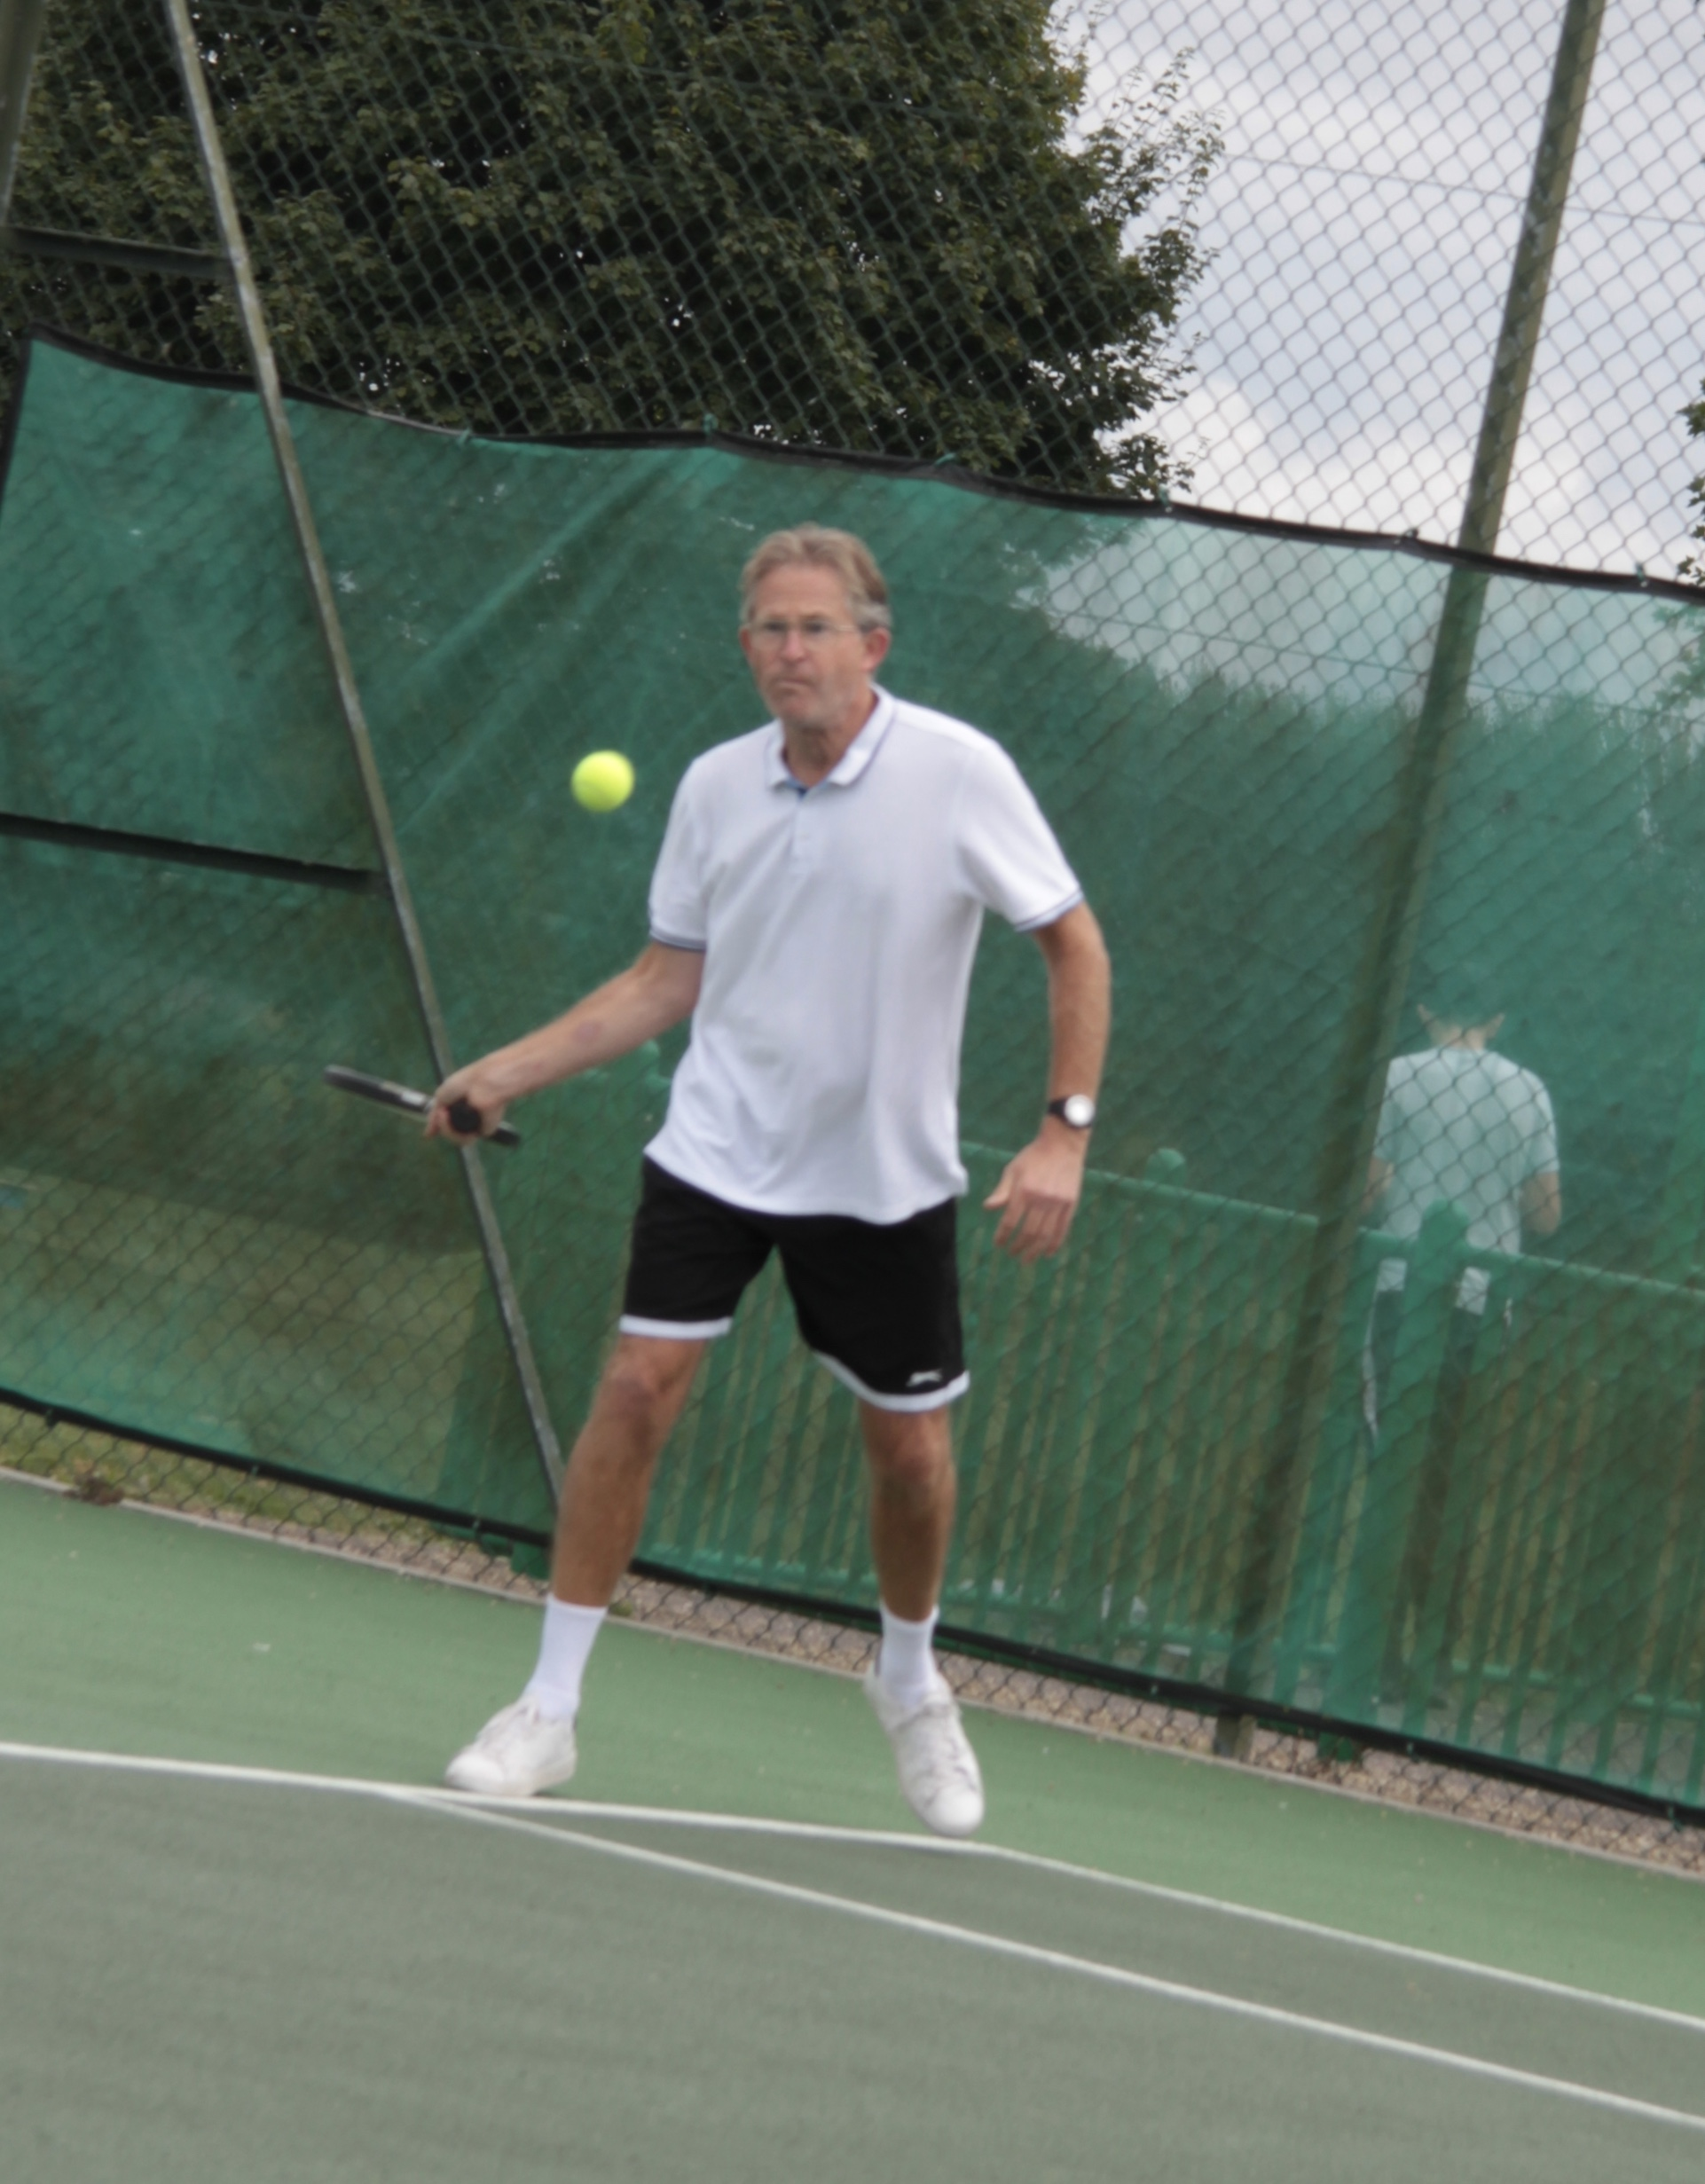 Charles playing a forehand